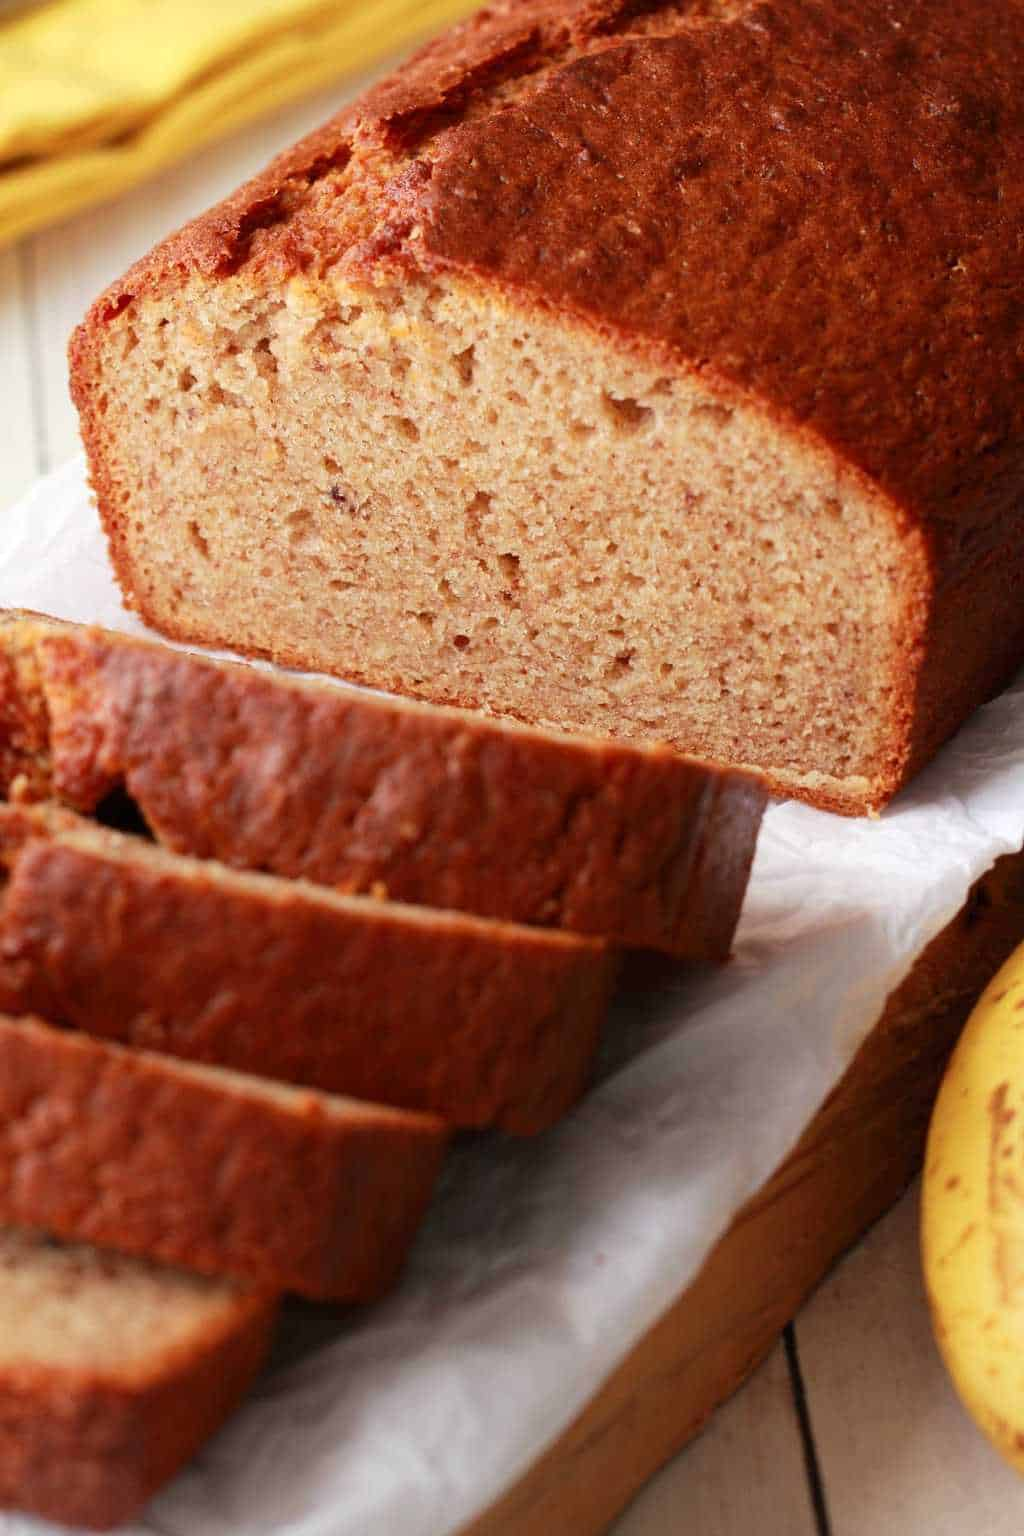 Sliced Vegan Banana Bread with a yellow napkin in the background.